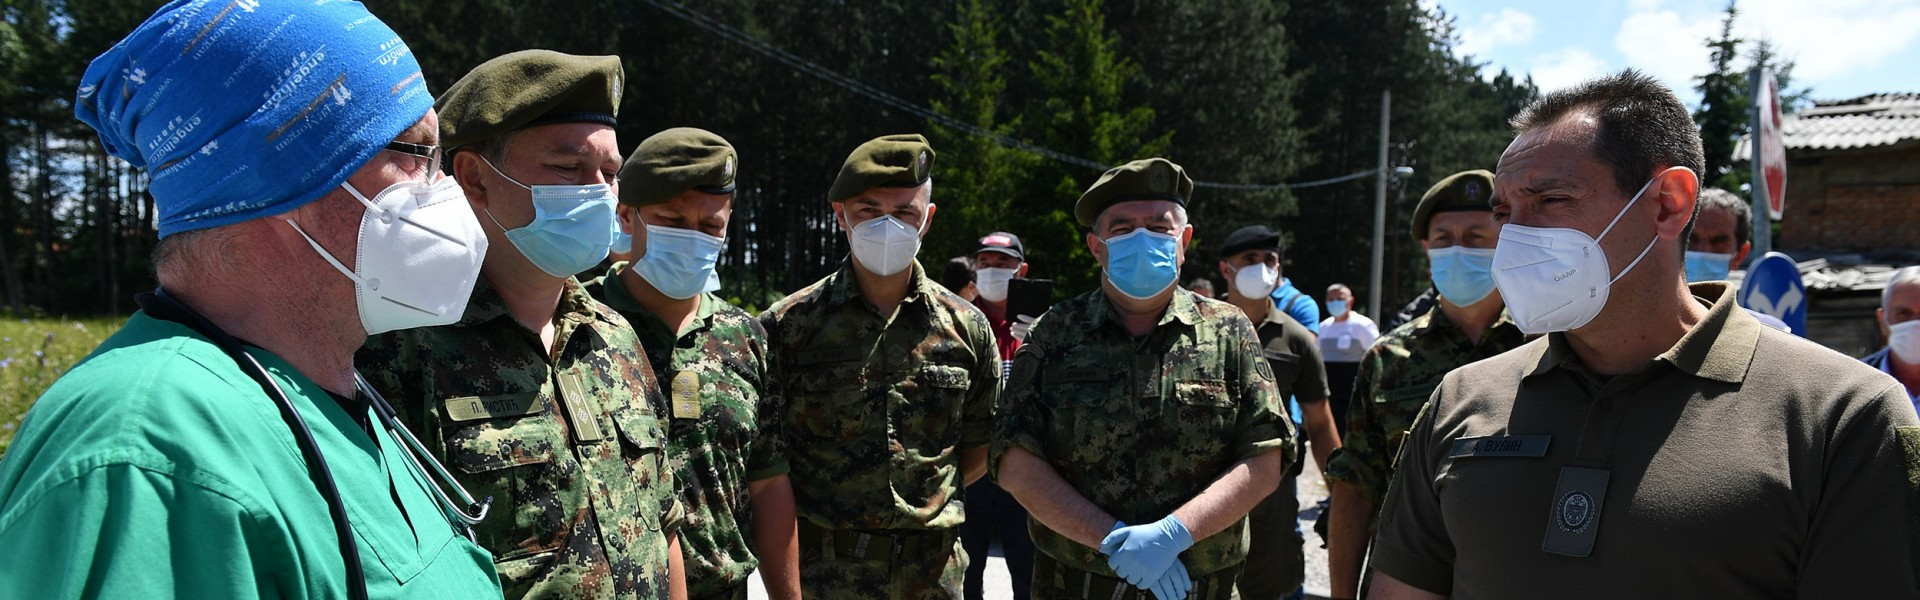 Minister Vulin in Sjenica: As long as there is a risk of infection, the Serbian Armed Forces will be there to help Sjenica, Tutin and Novi Pazar